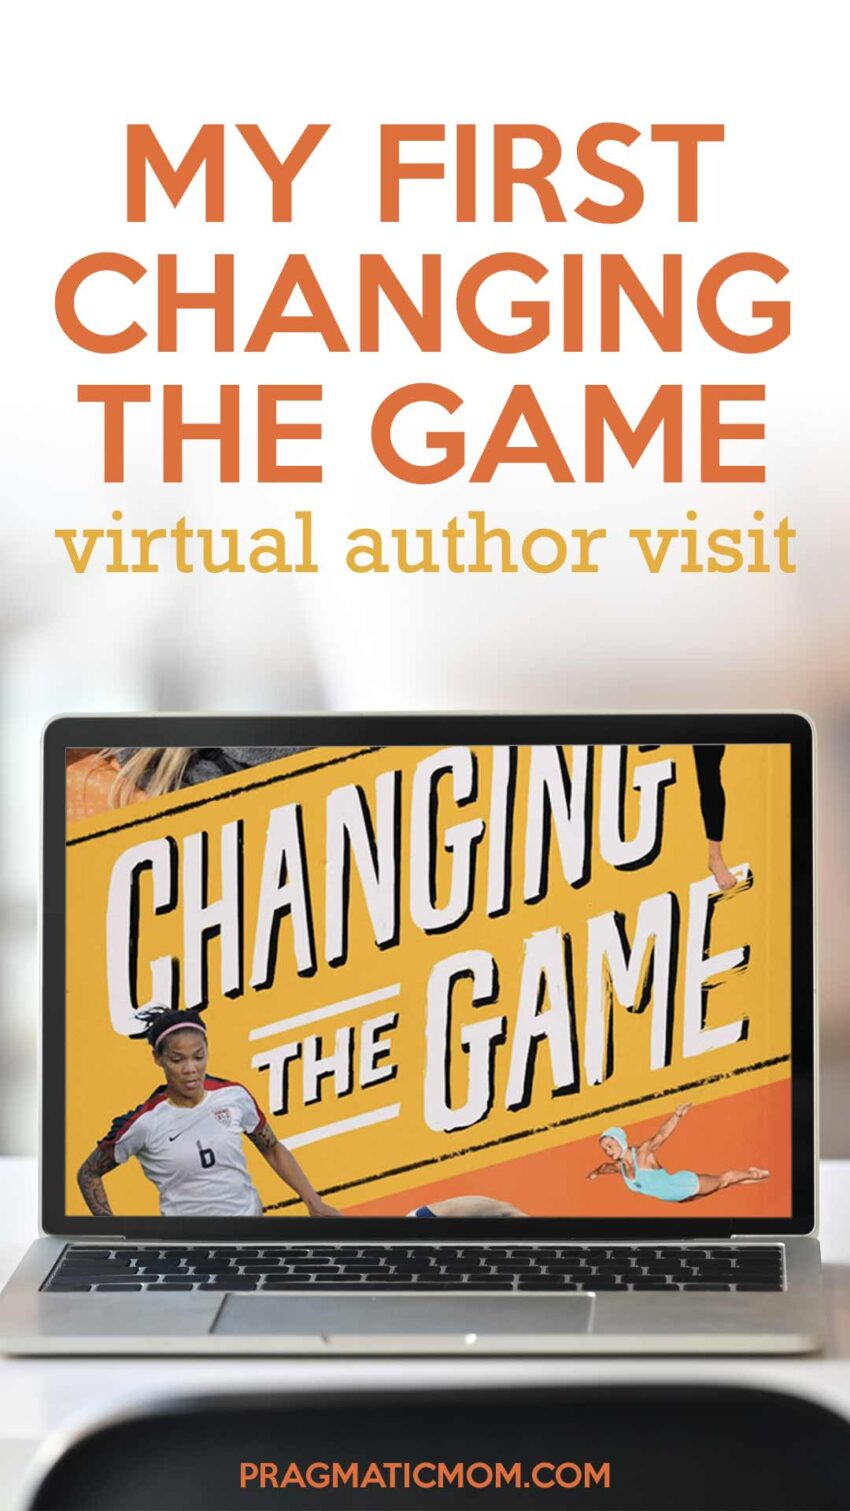 My first CHANGING THE GAME virtual author visit